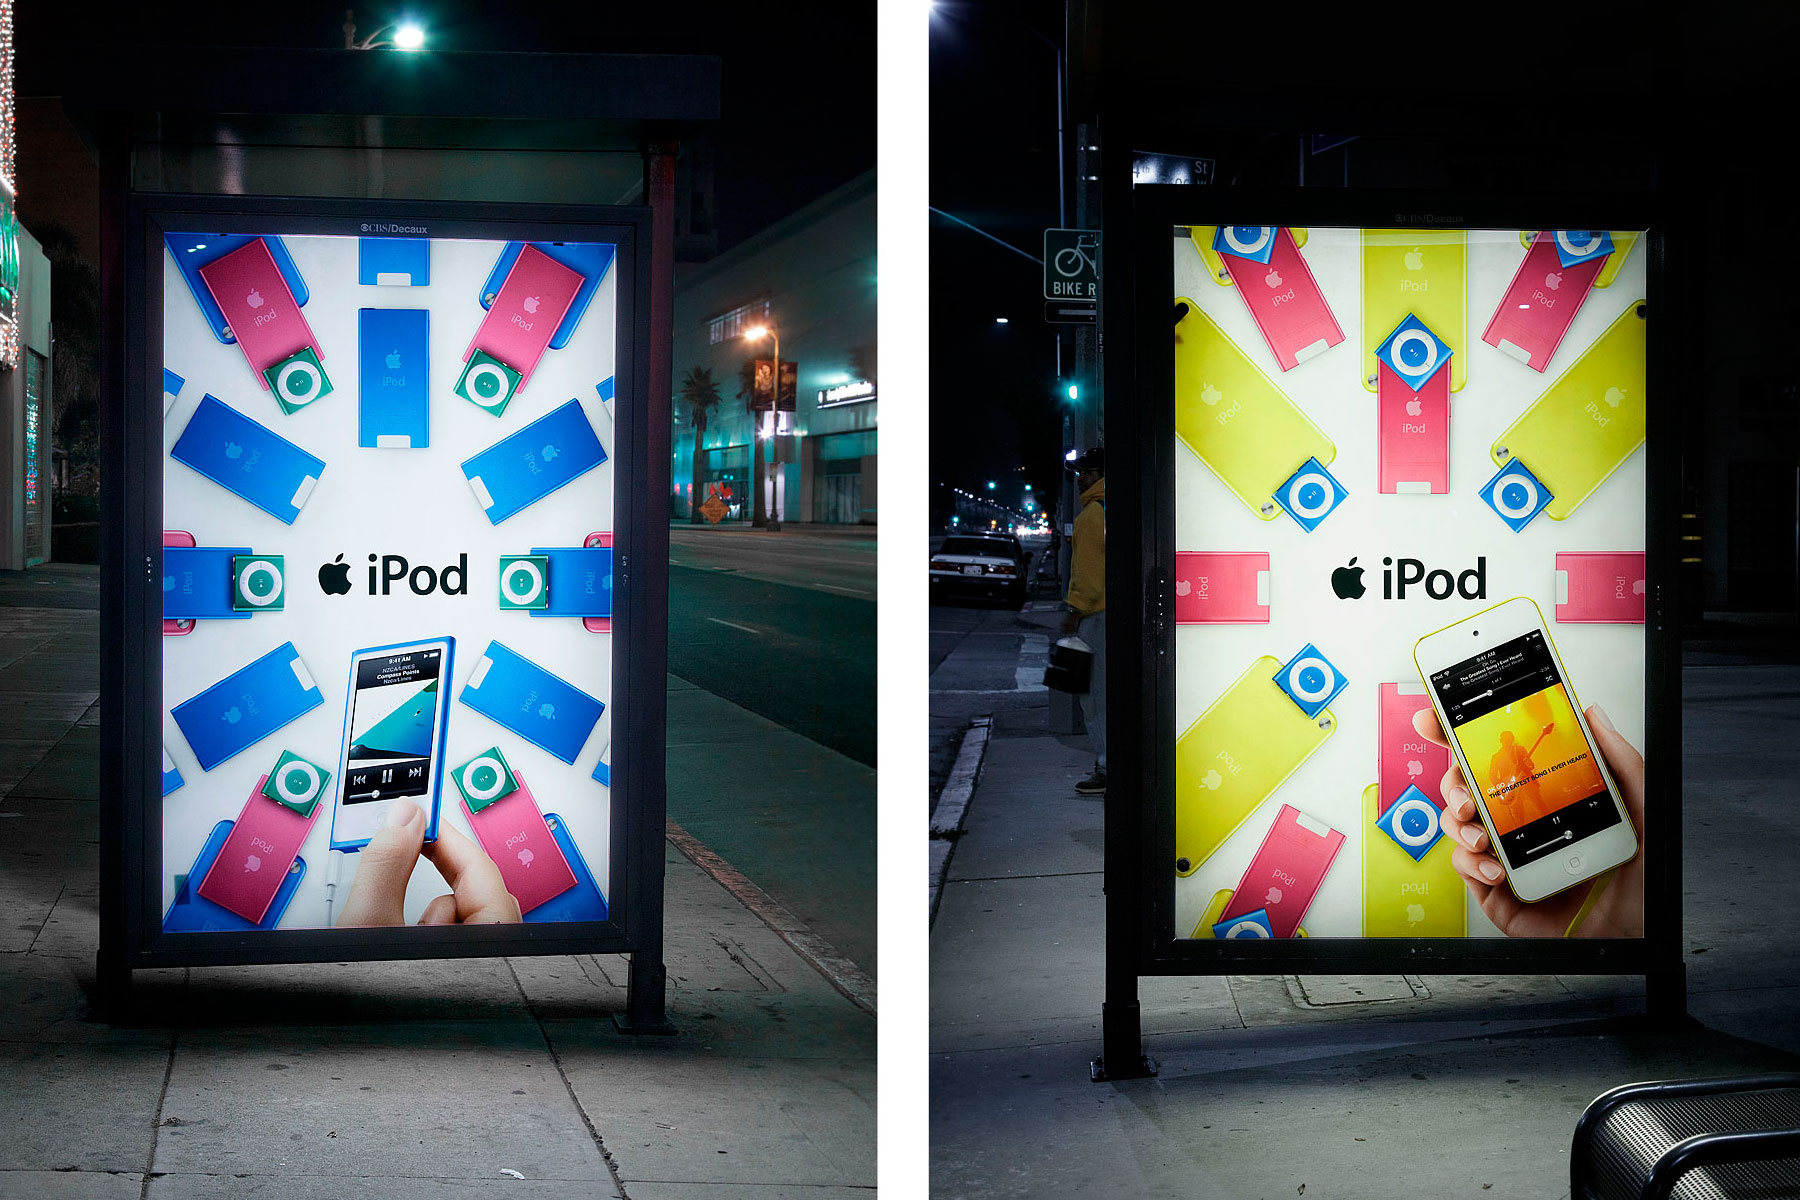 APPLE-IPOD-BOARD-4